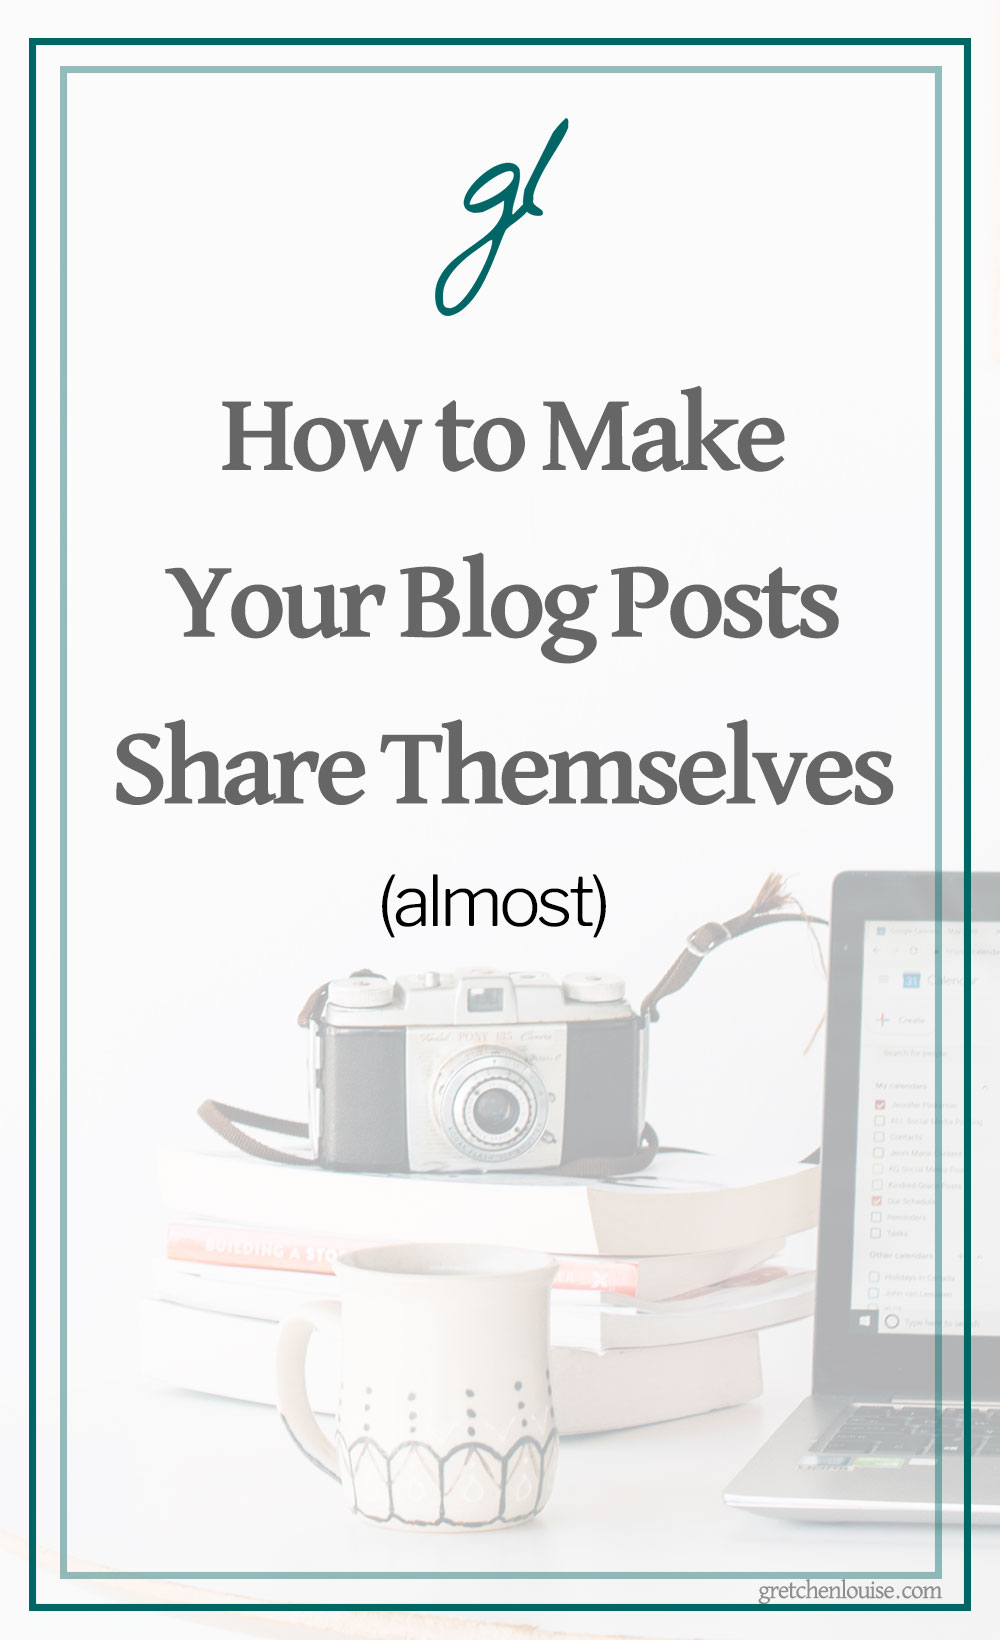 You don't have to be a social media ninja to be a successful blogger. In fact, your blog posts can go viral without you ever having to share them on Facebook or Twitter. Here are ten ways to make your blog posts so easy to share that they almost share themselves. via @GretLouise